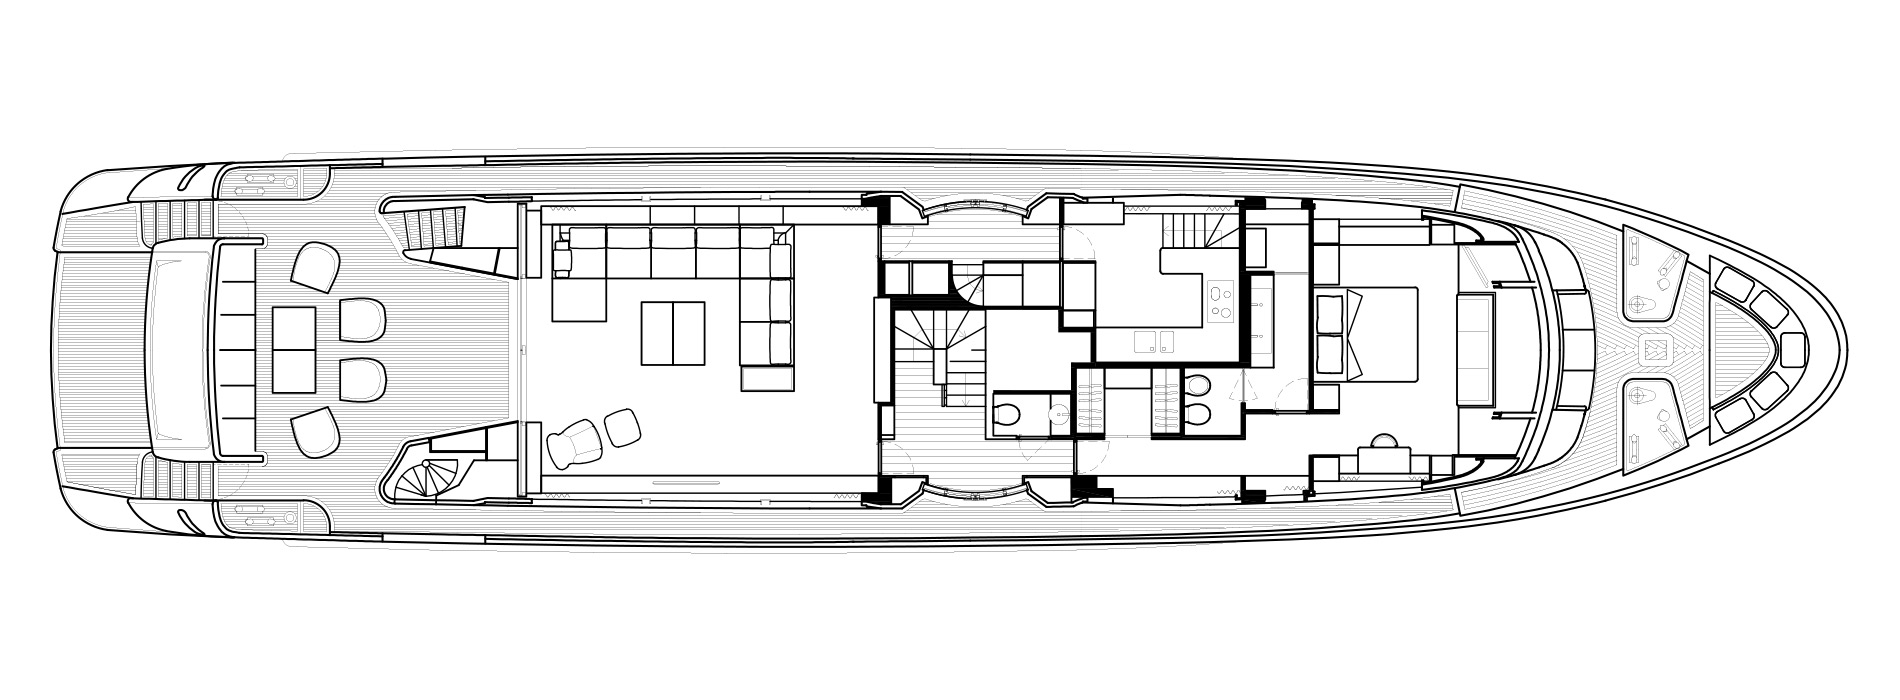 Sanlorenzo Yachts SD112 Main deck Version B